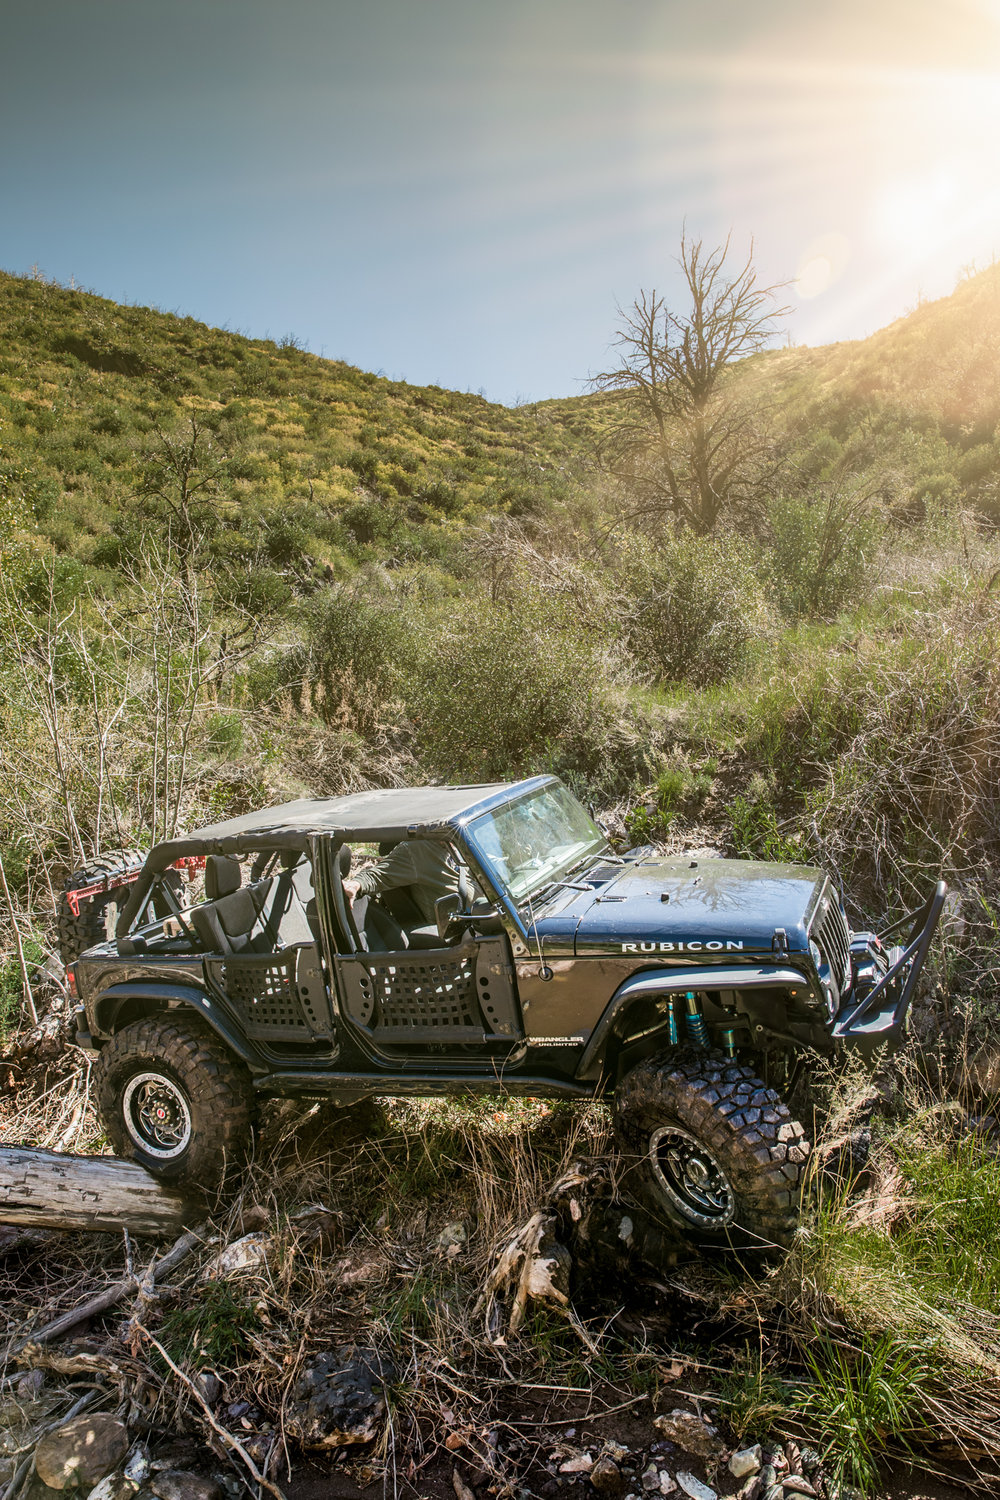 Jeeps Sycamore Creek 3_25_17 WEB-8.jpg